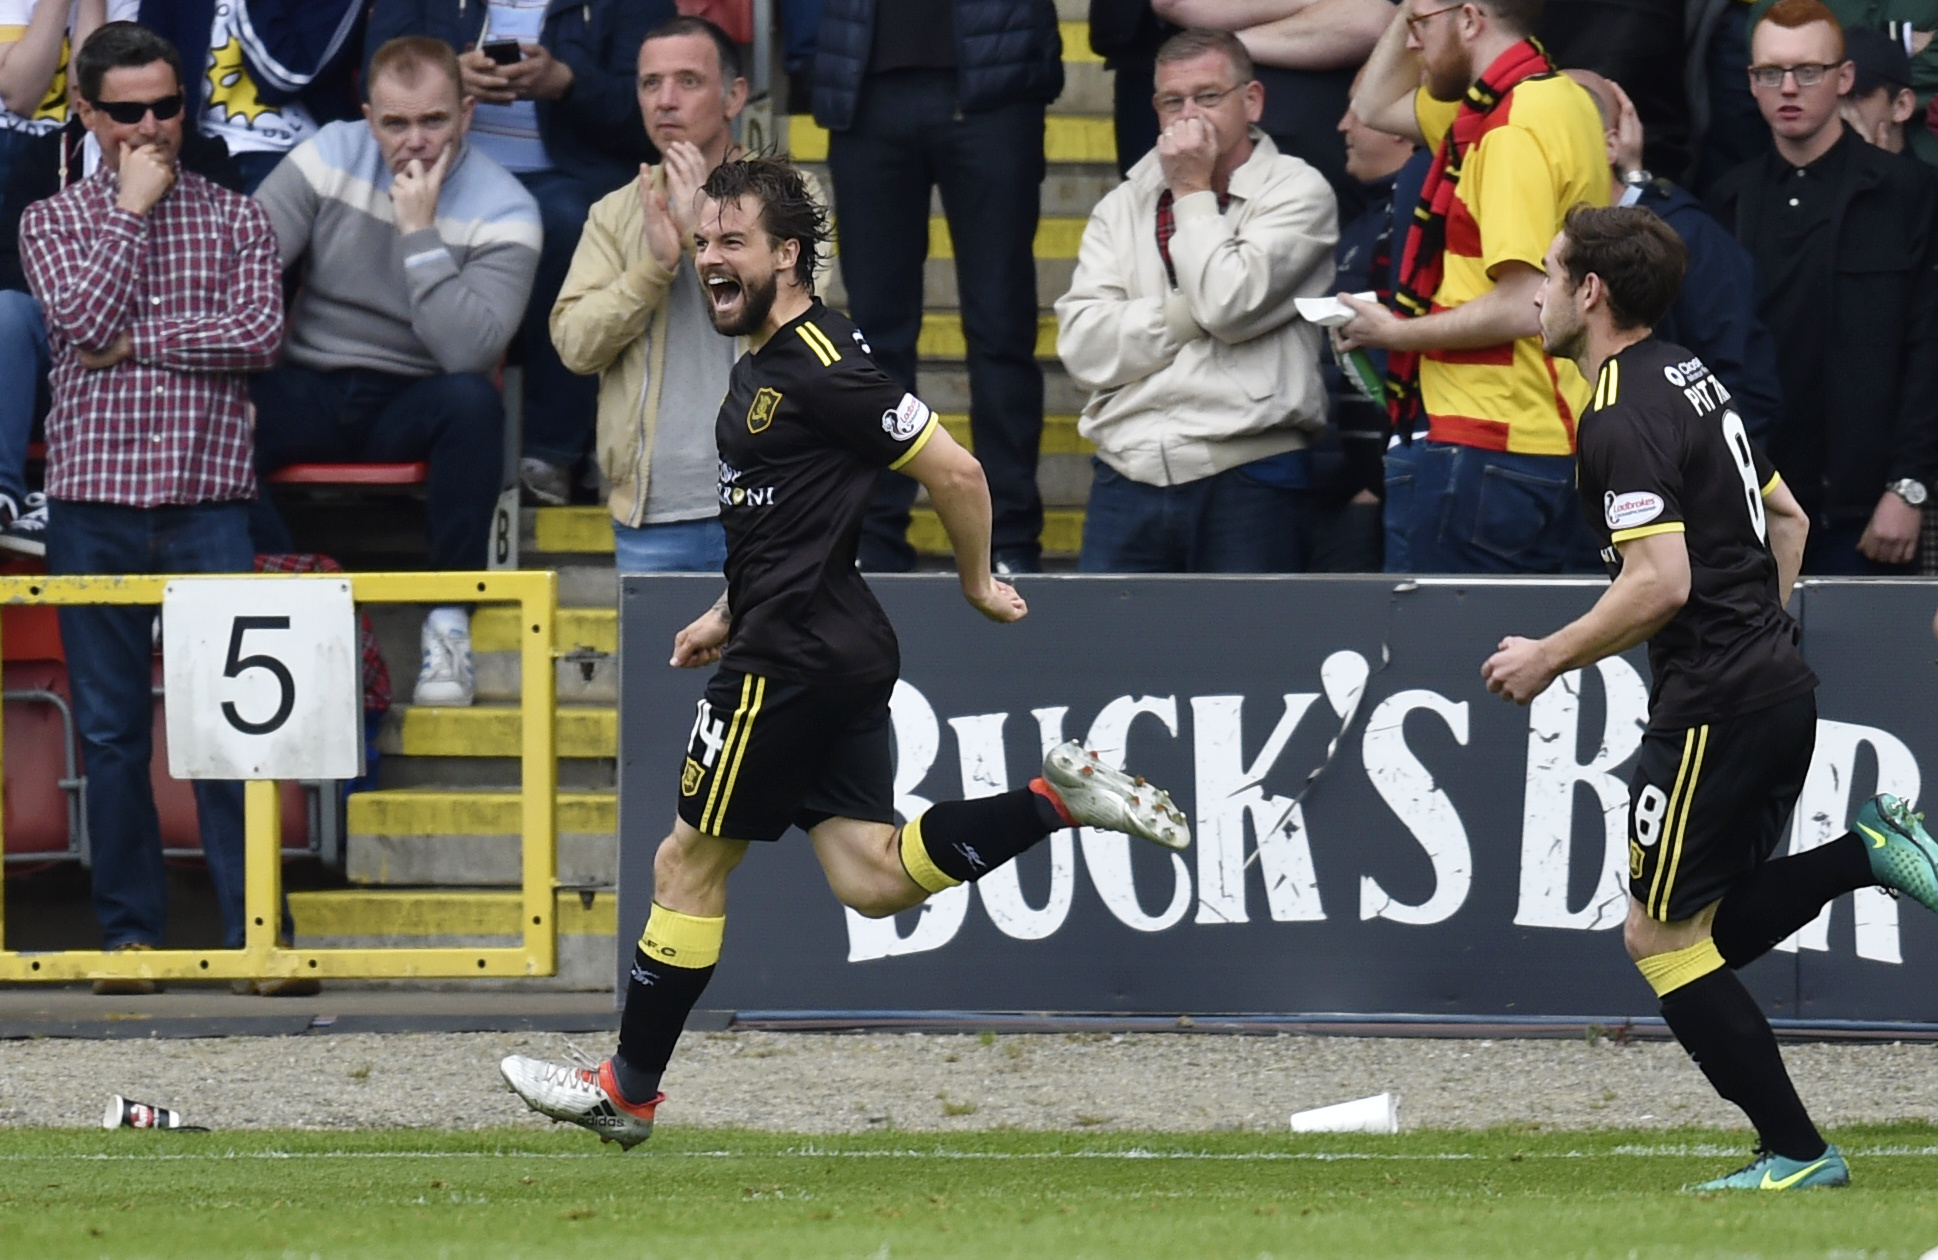 A jubilant Keaghan Jacobs wheels away after netting what proved to be the winner at Firhill (photo:  SNS Group)